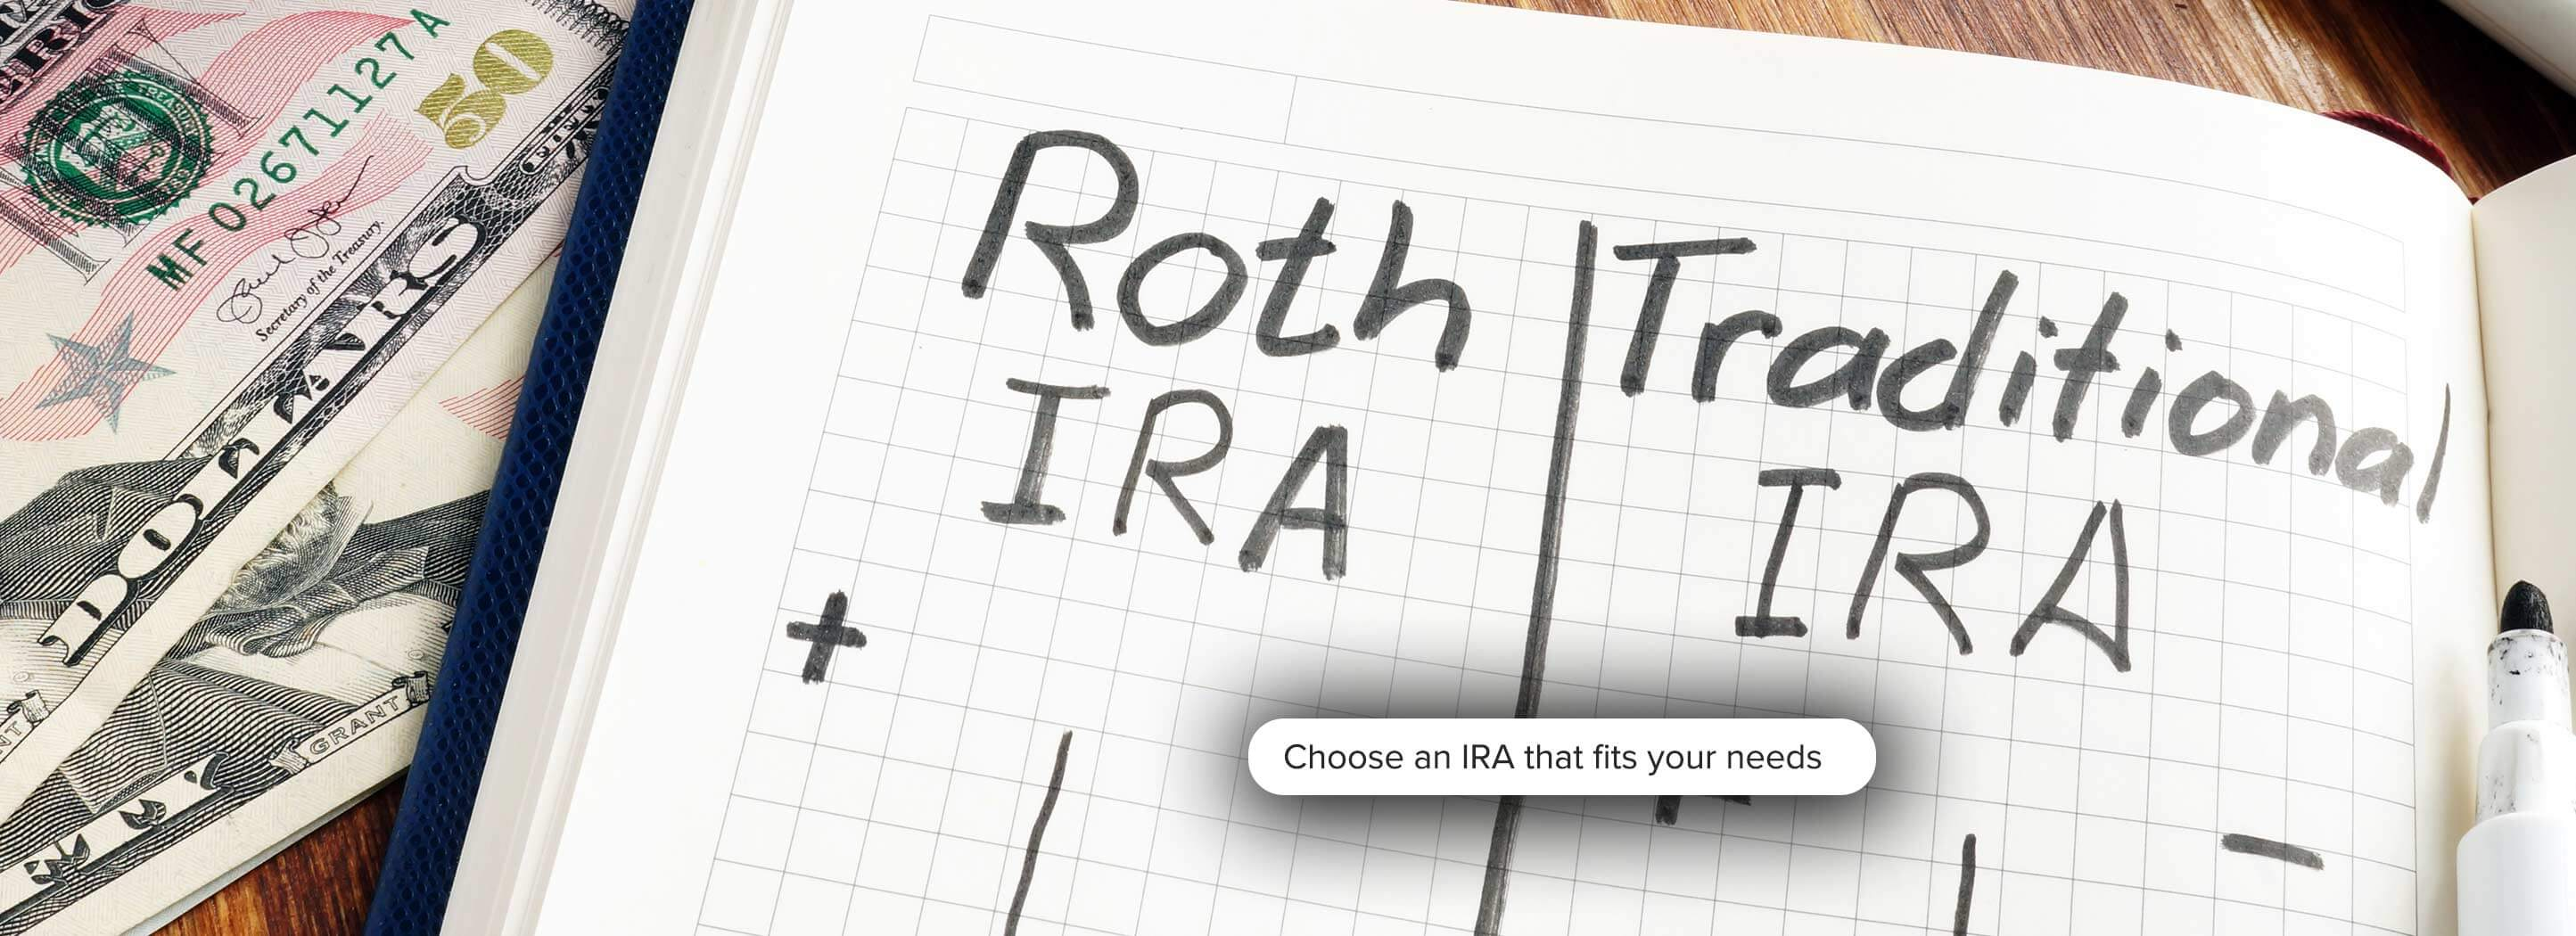 Choose an IRA that fits your needs